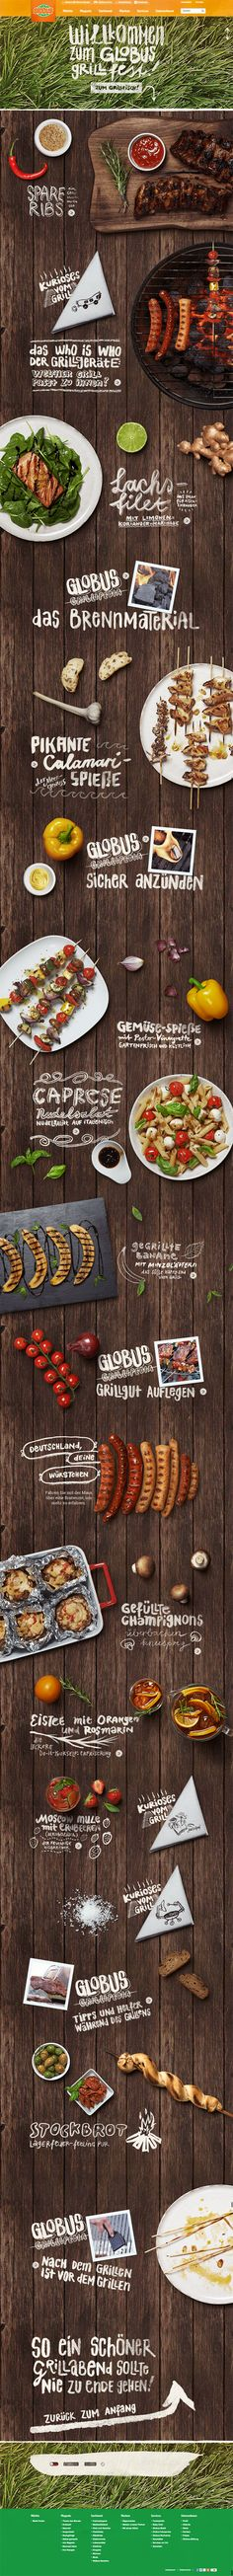 The Globus Grillfest by Kathrin Schmitz, via Behance